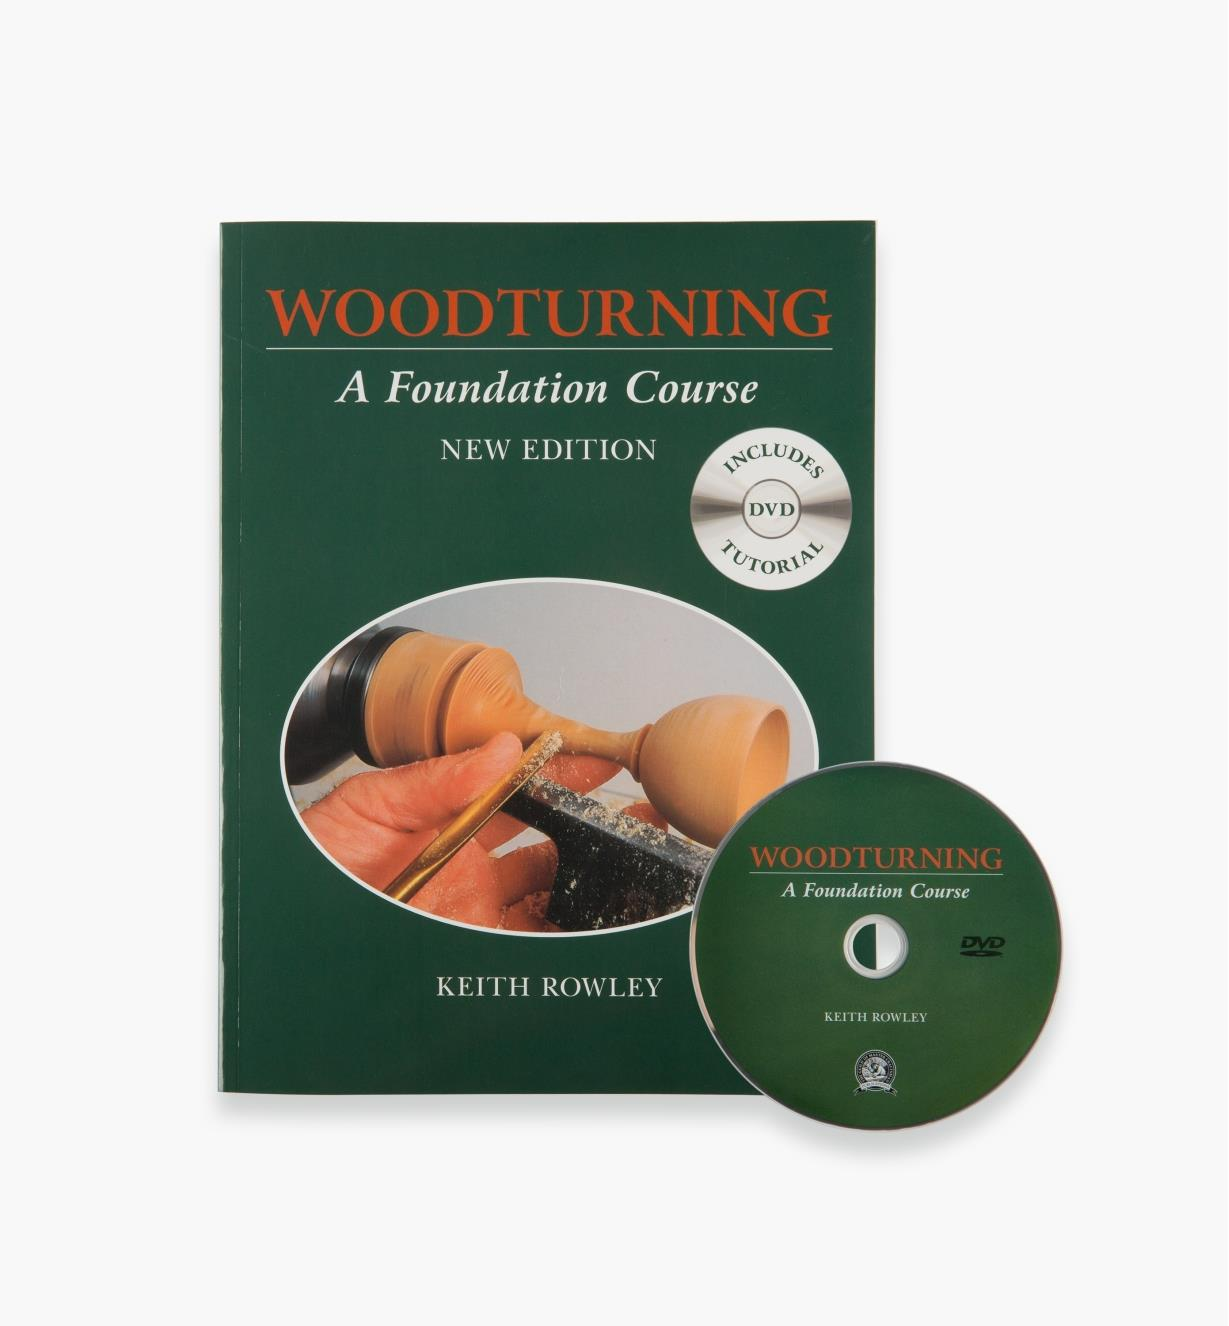 73L0291 - Woodturning – A Foundation Course